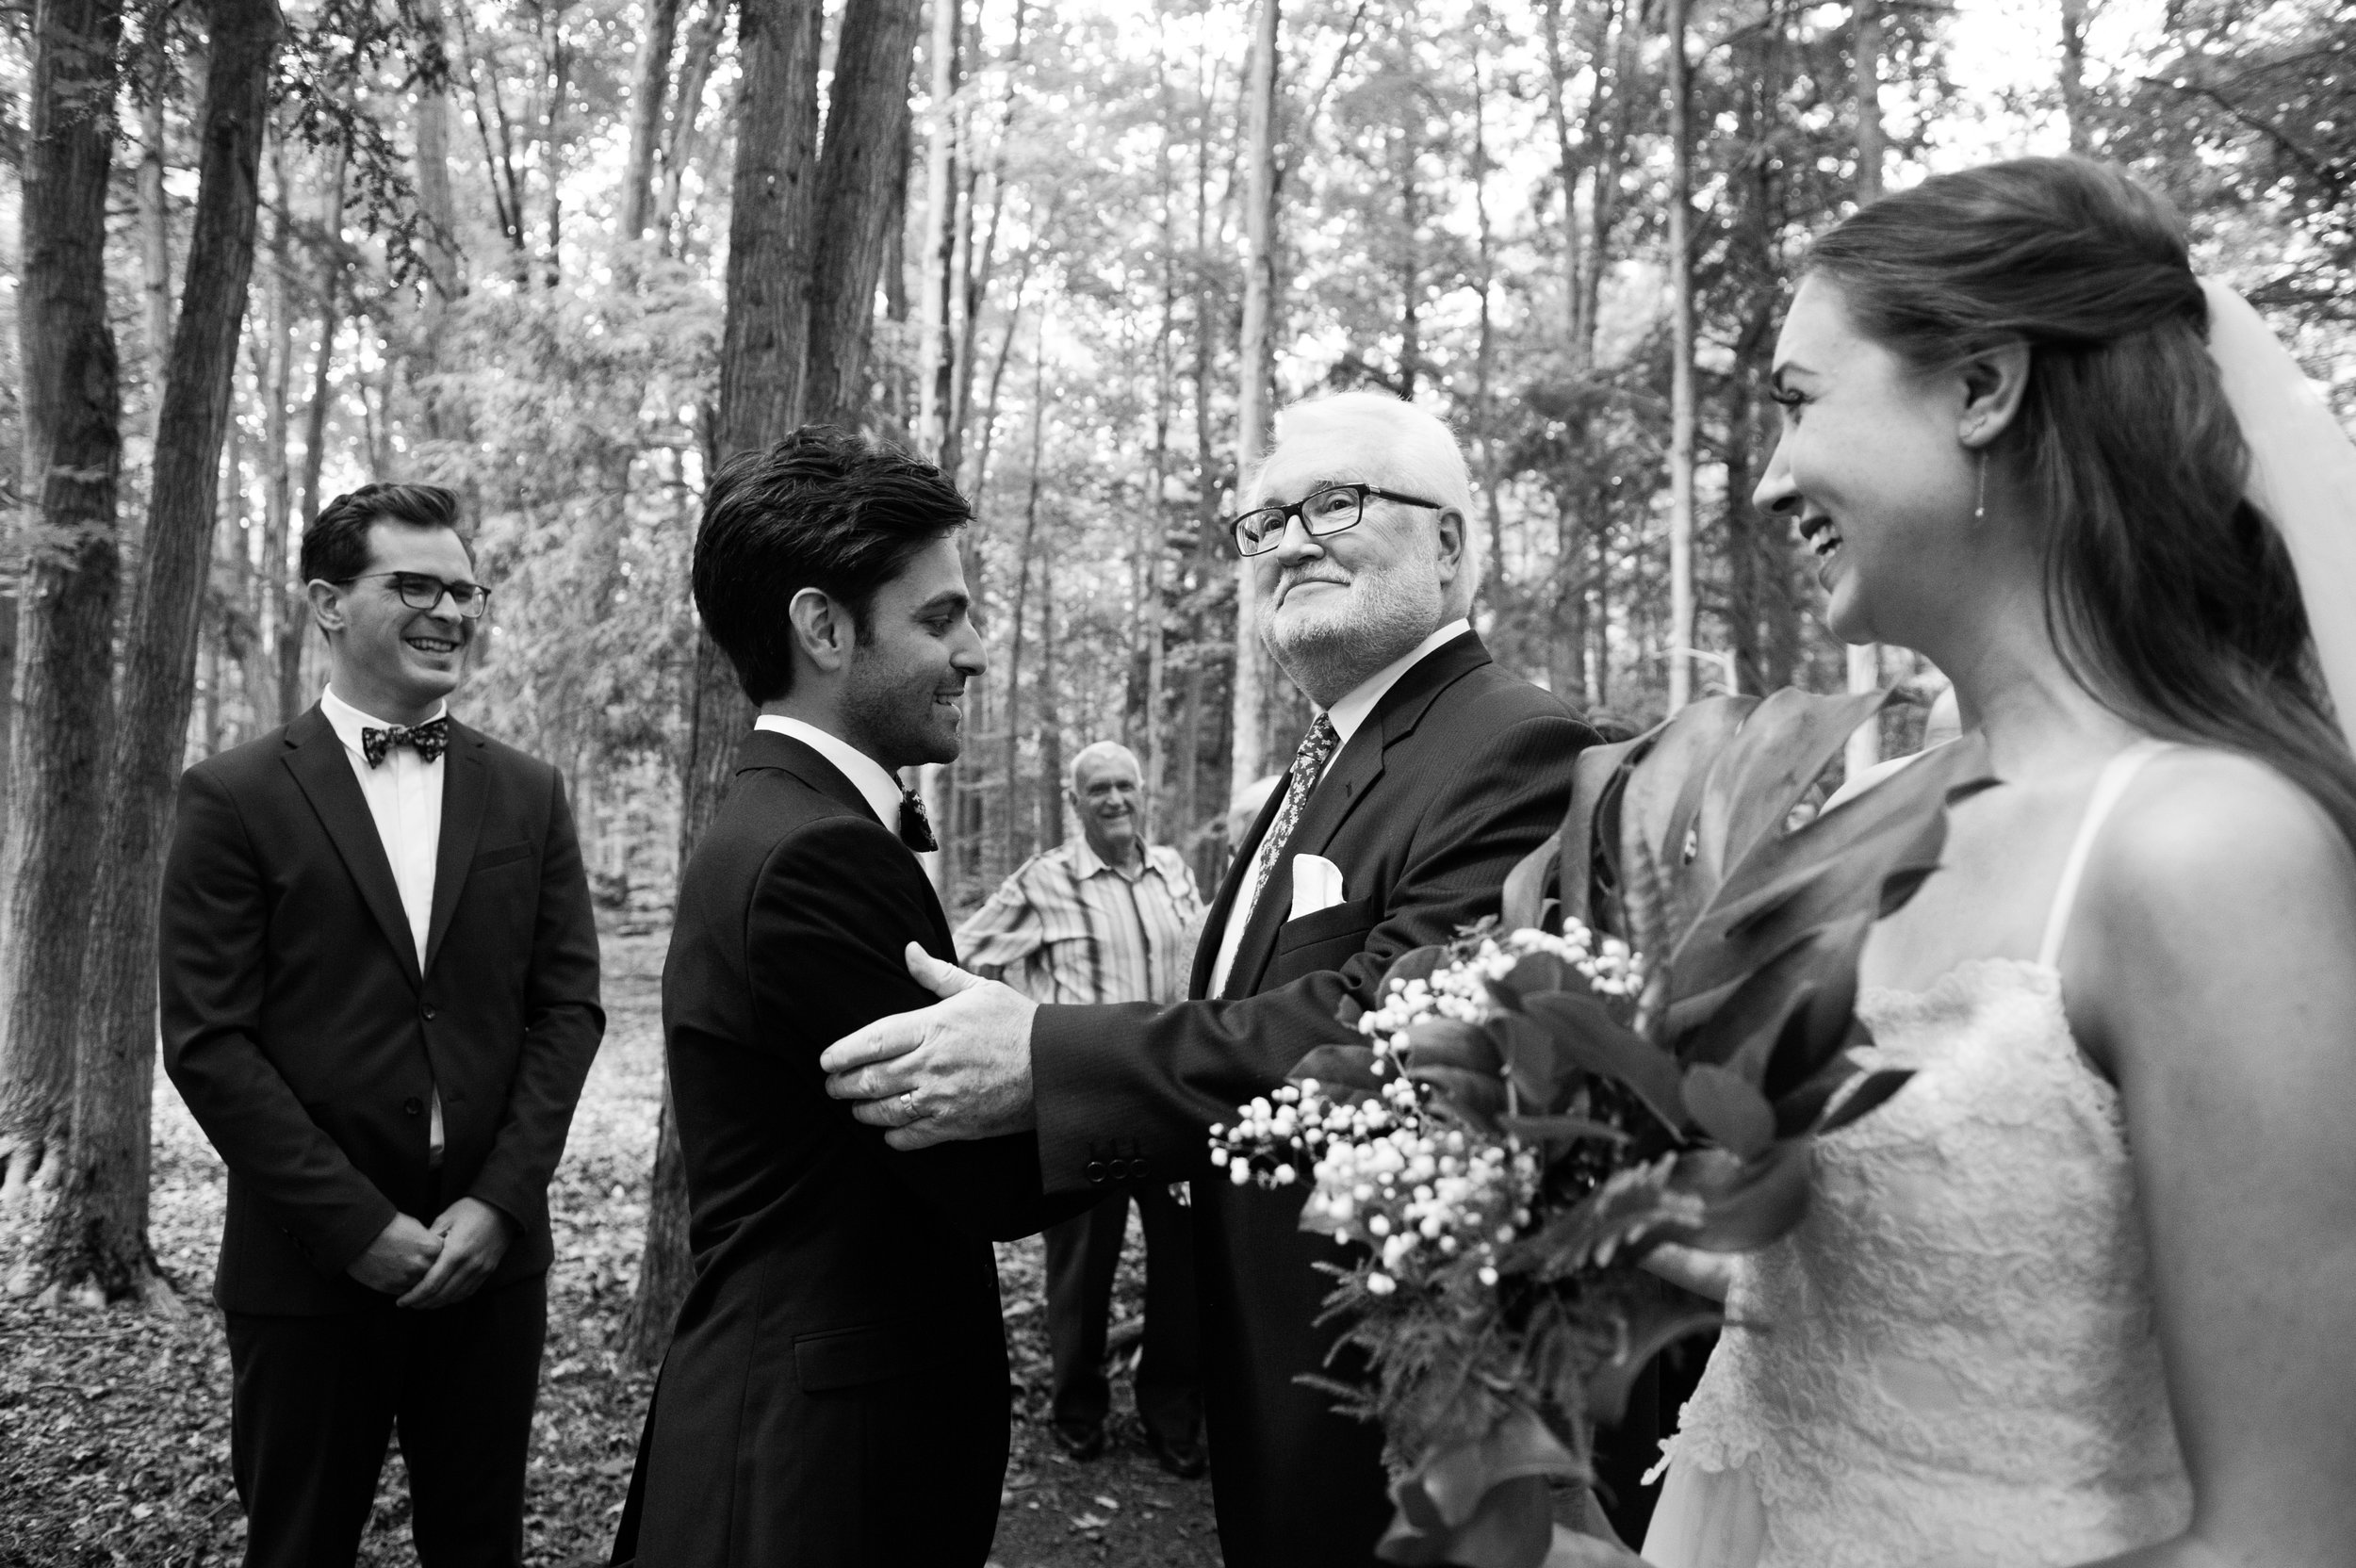 The father of the bride shakes the groom's hand. // Wedding photos by Karmel Kreative // Plant Based Bride